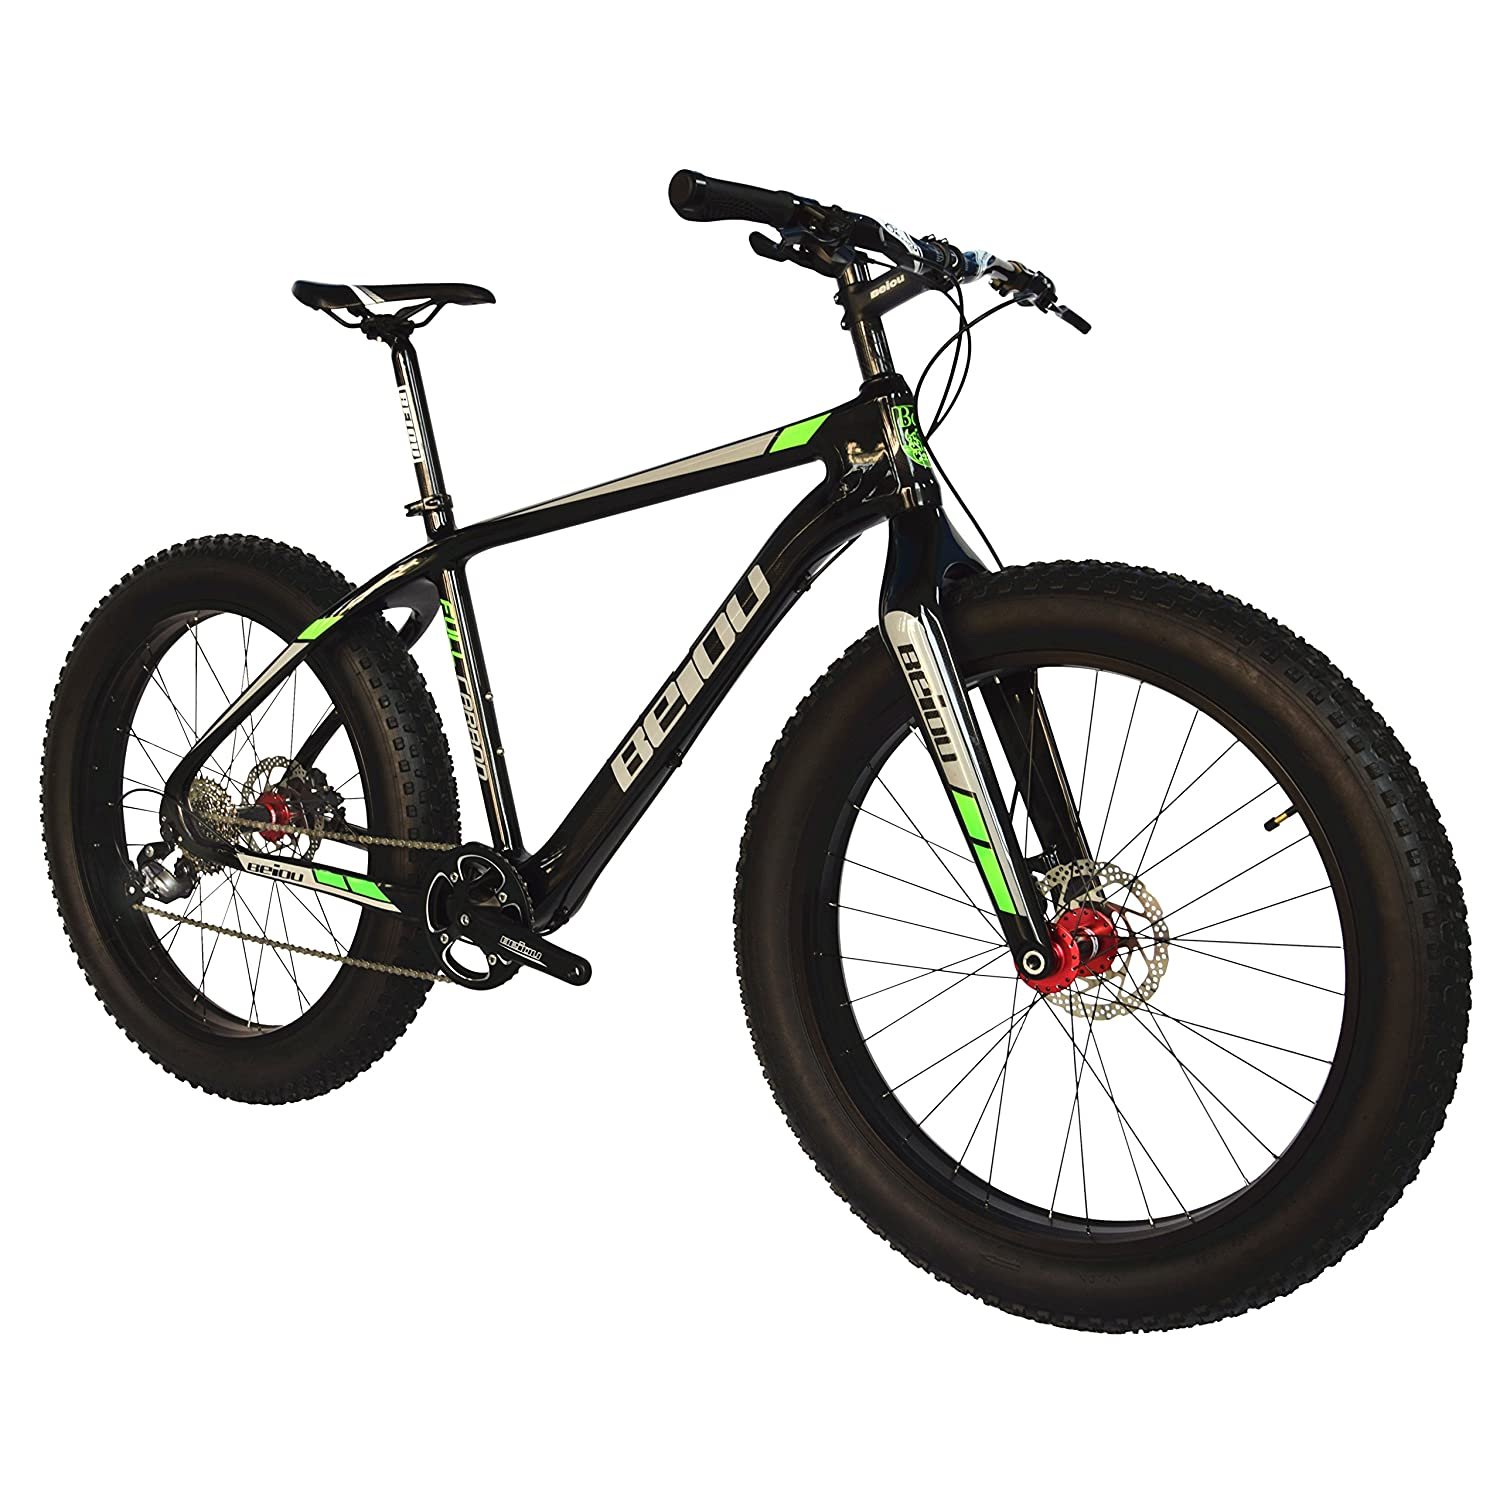 2017 Beiou Full Carbon Fat Tire Bicycle Fat Mountain